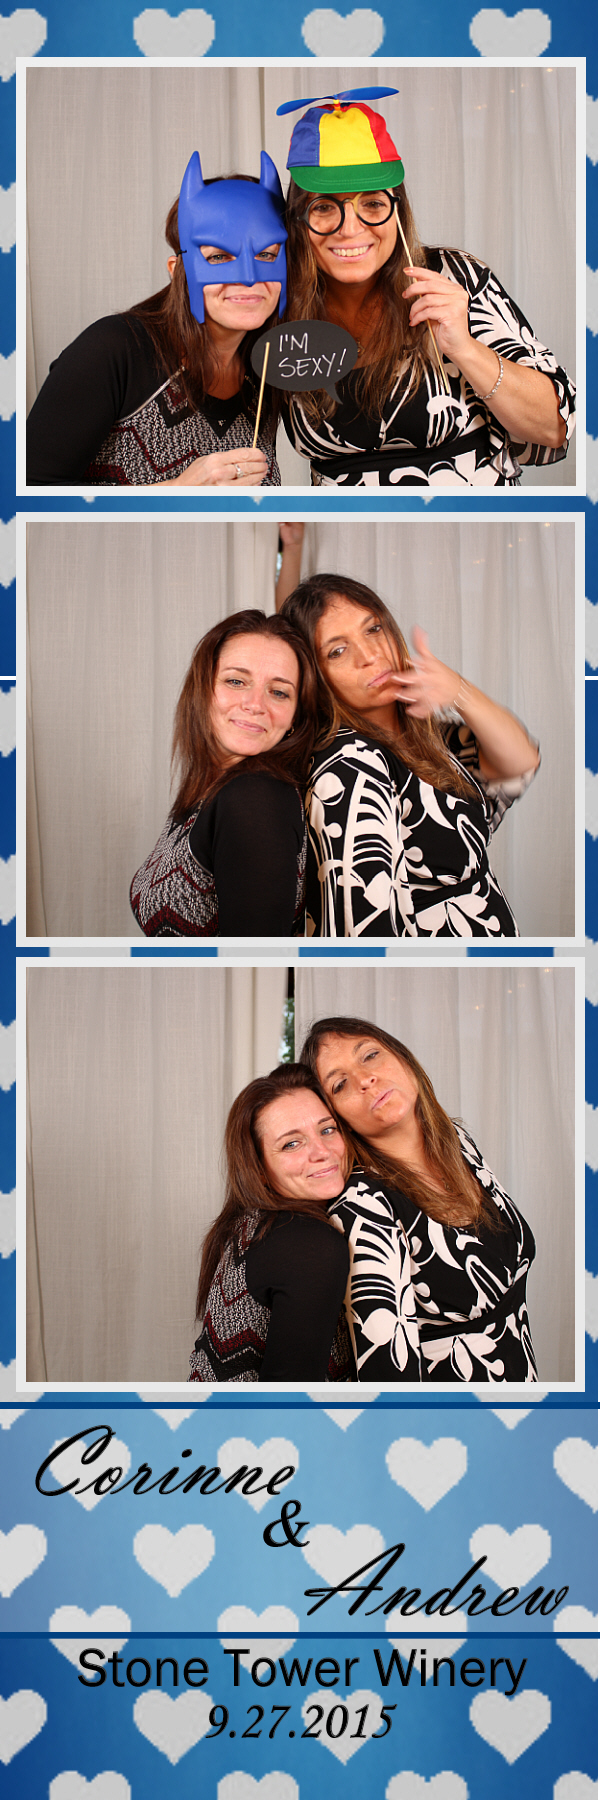 Guest House Events Photo Booth C&A (8).jpg